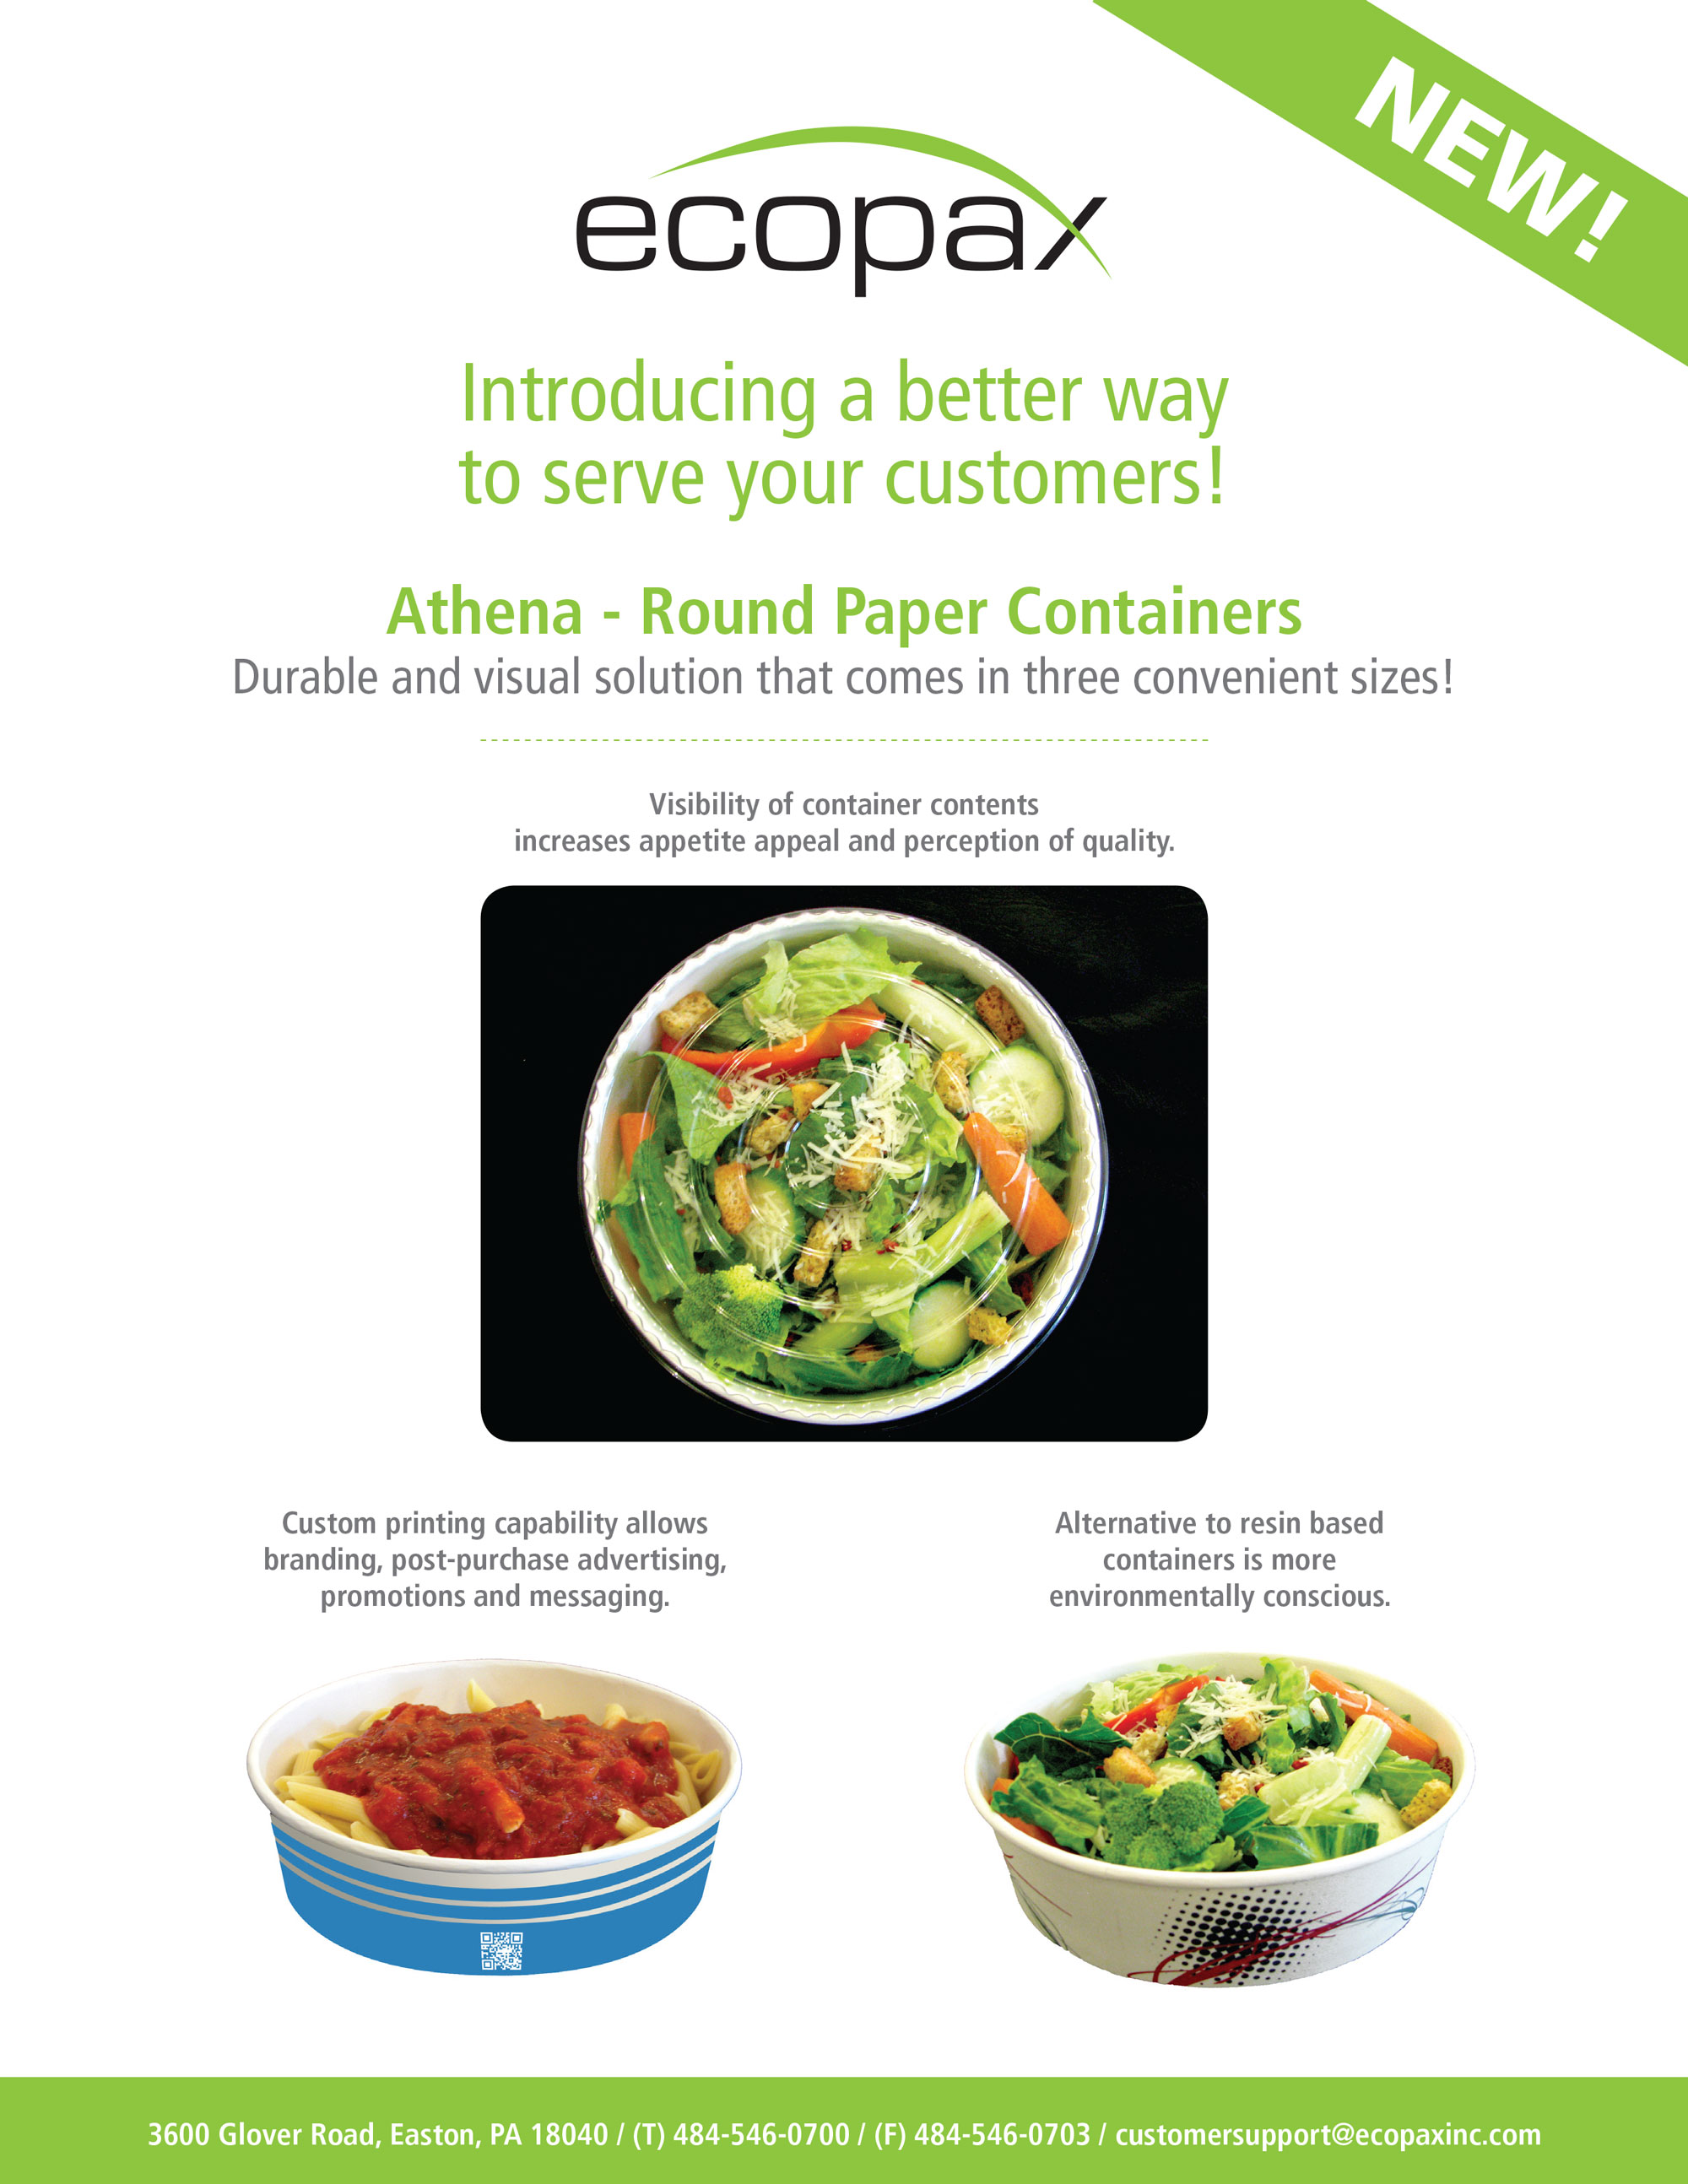 Ecopax Athena Round Paper Bowl Sale Sheet containing specs about products while featuring takeout containers with real food such as salade and pasta